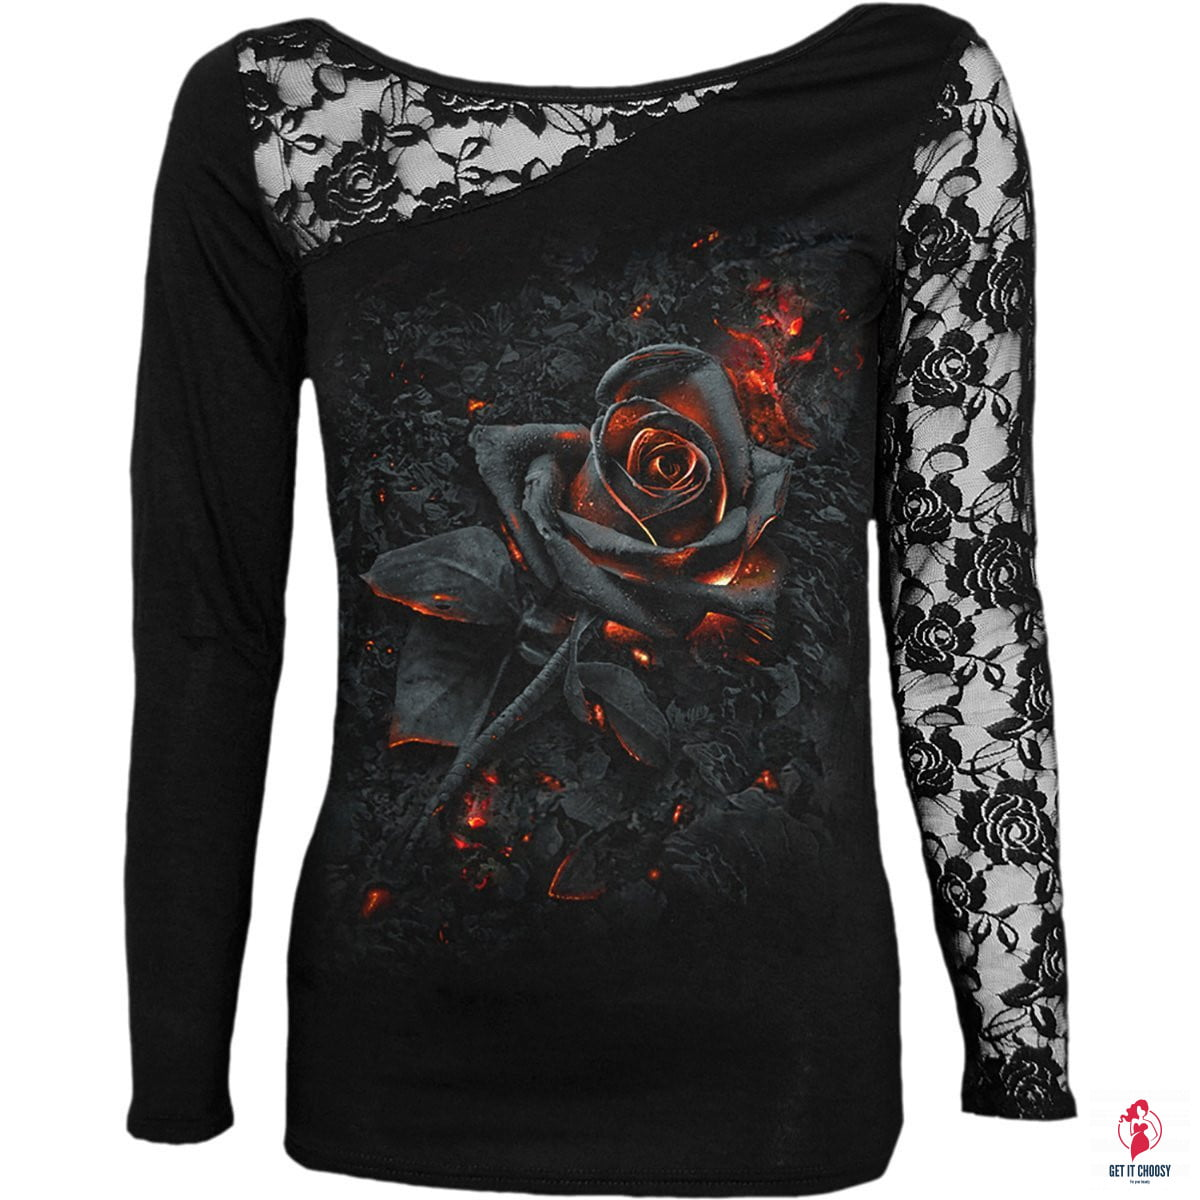 Burnt Rose - Lace One Shoulder Top Black by Getitchoosy